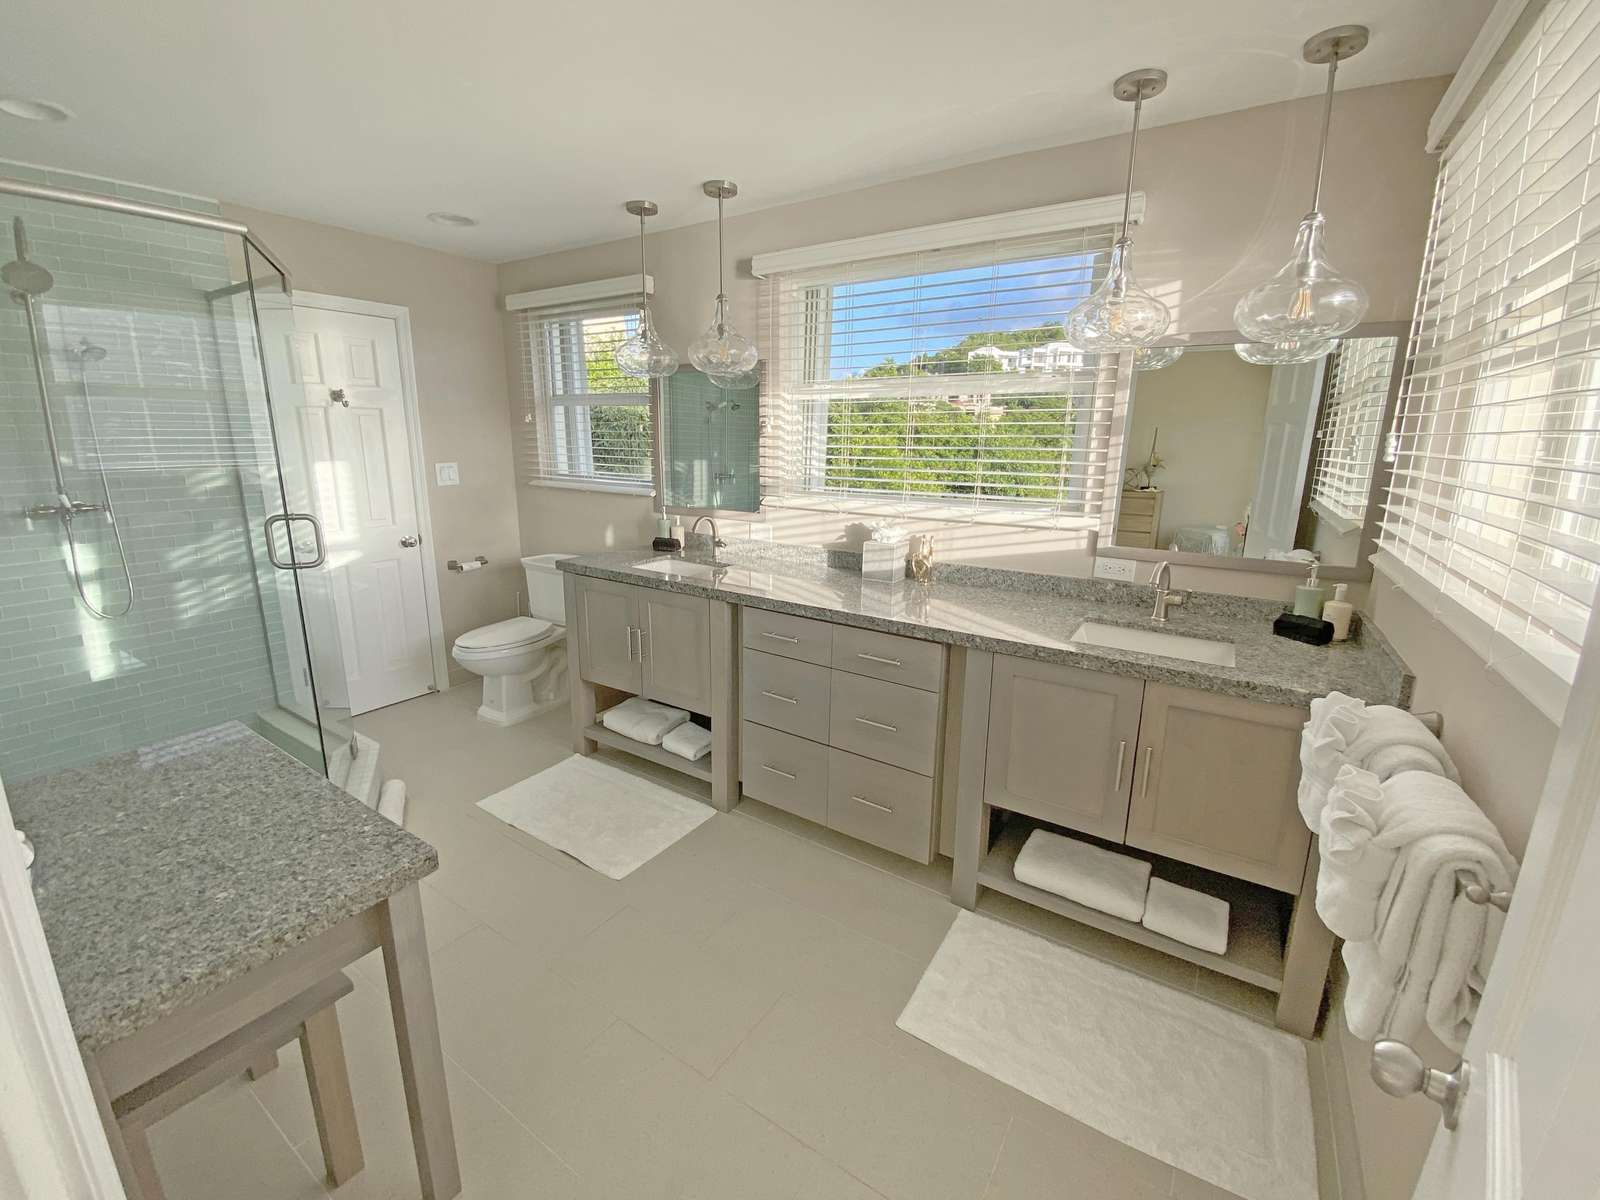 Master Bath with Double Sinks and Vanity